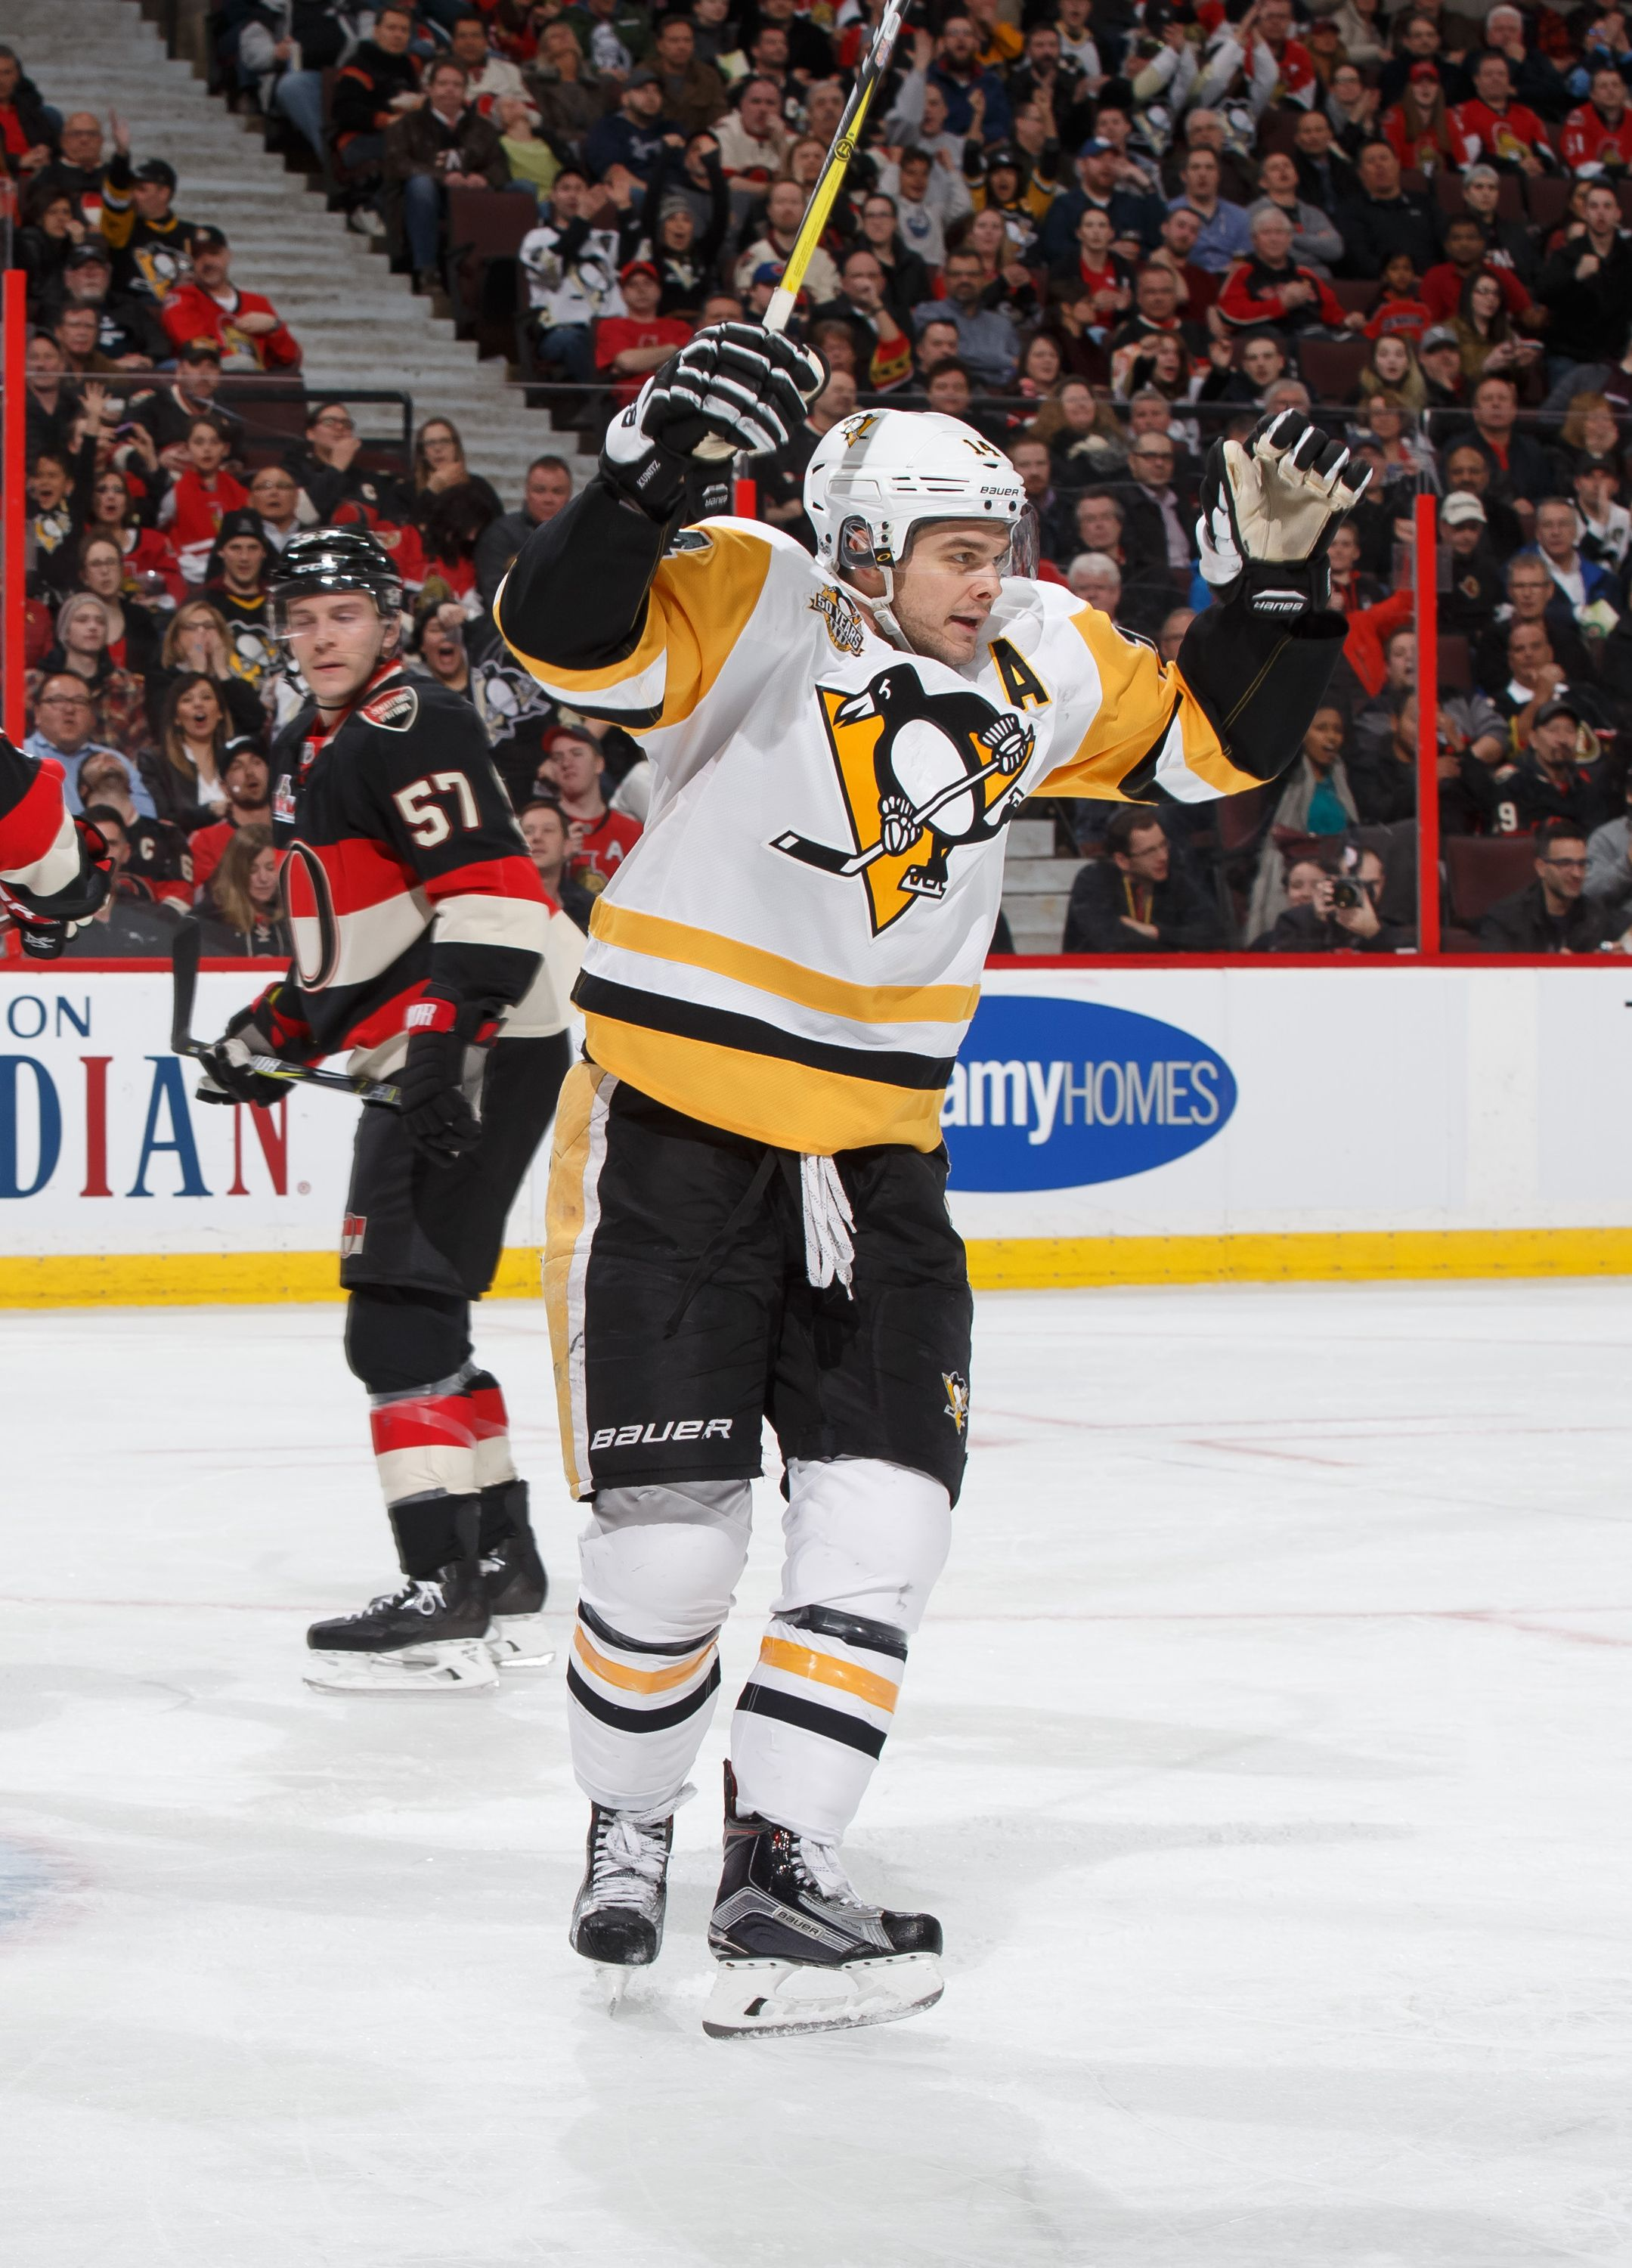 March 2017 at Ottawa: Nick Bonino scored the lone goal for Pittsburgh as  the fell in the shootout. Final Score, Senators (SO).